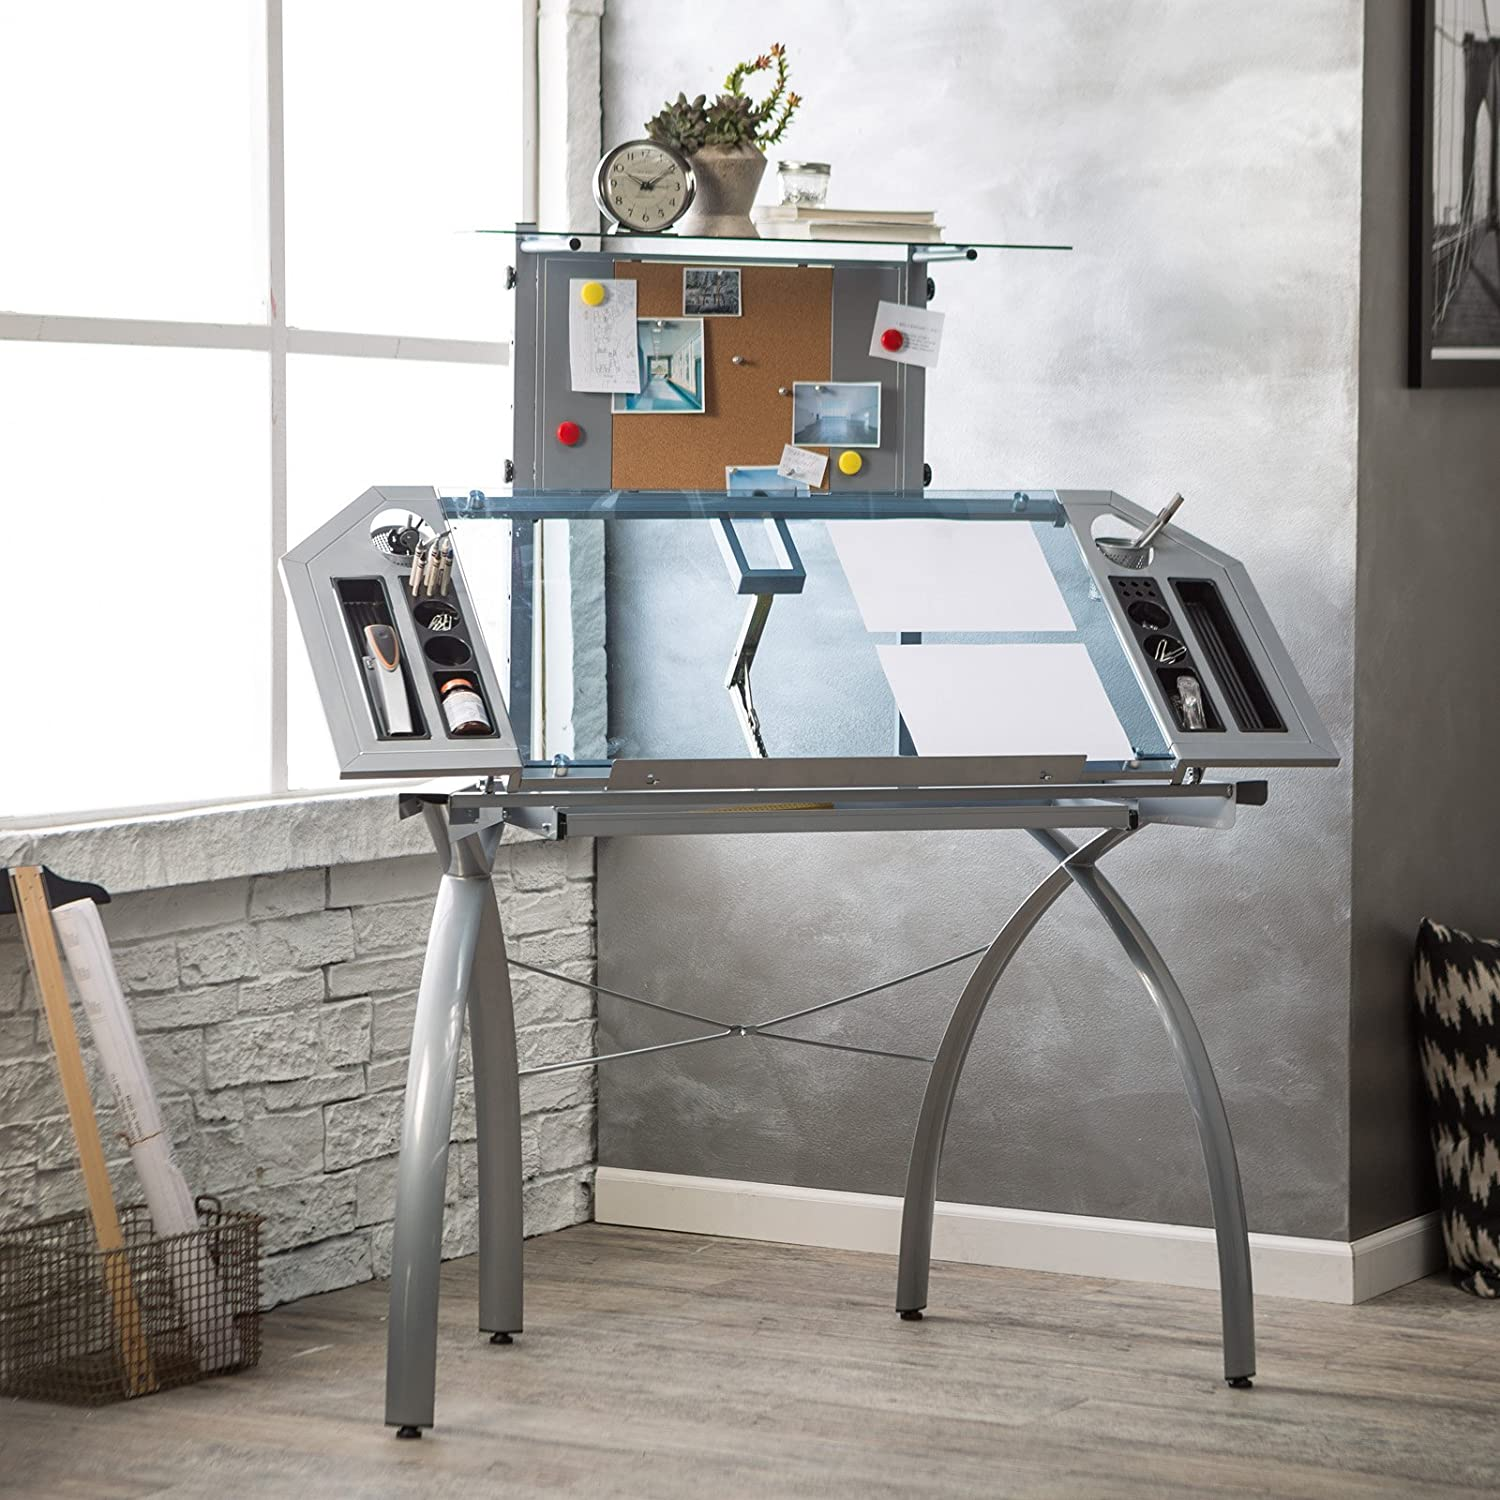 Studio designs futura craft station with glass top - Amazon Com Studio Designs Glass Top Futura Tower Drafting Station Home Kitchen